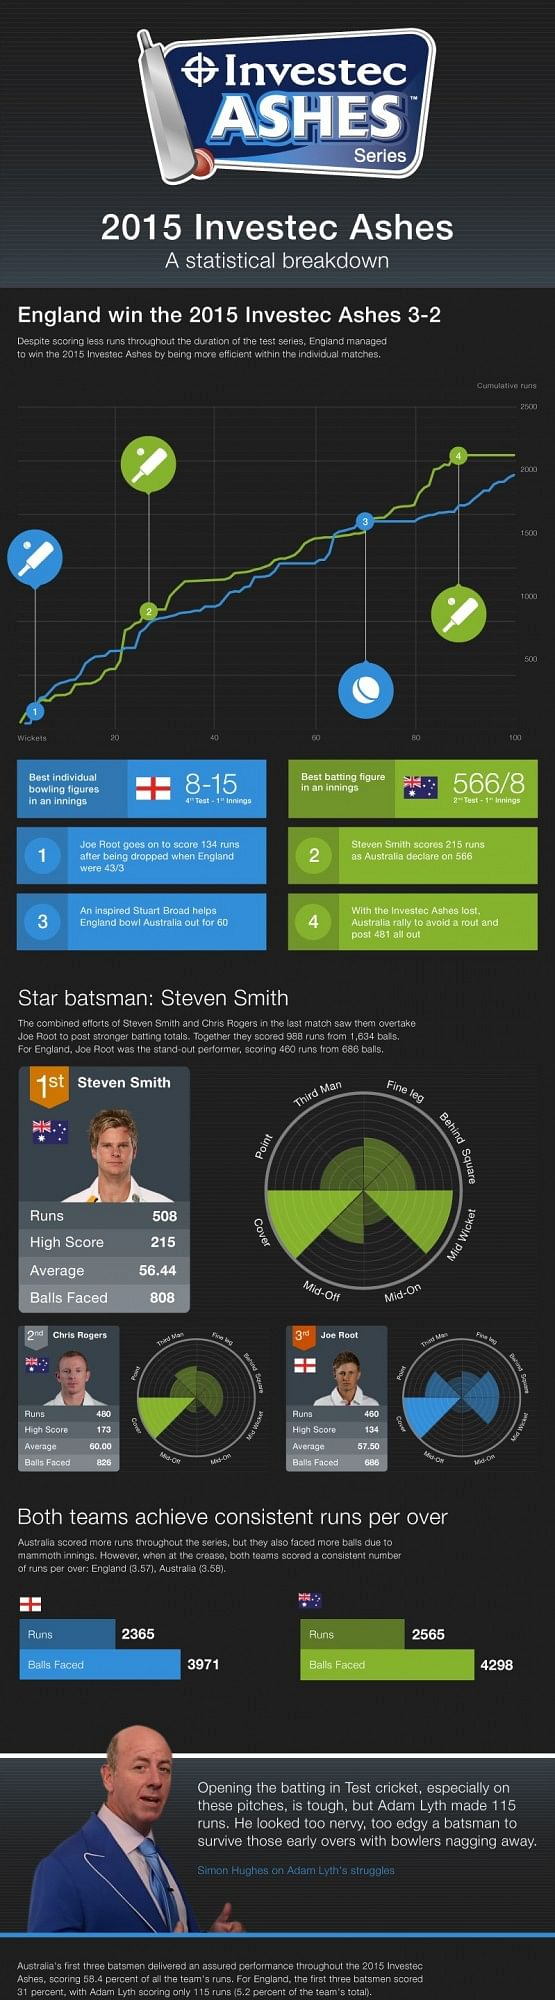 2015 Investec Ashes - A Statistical Breakdown